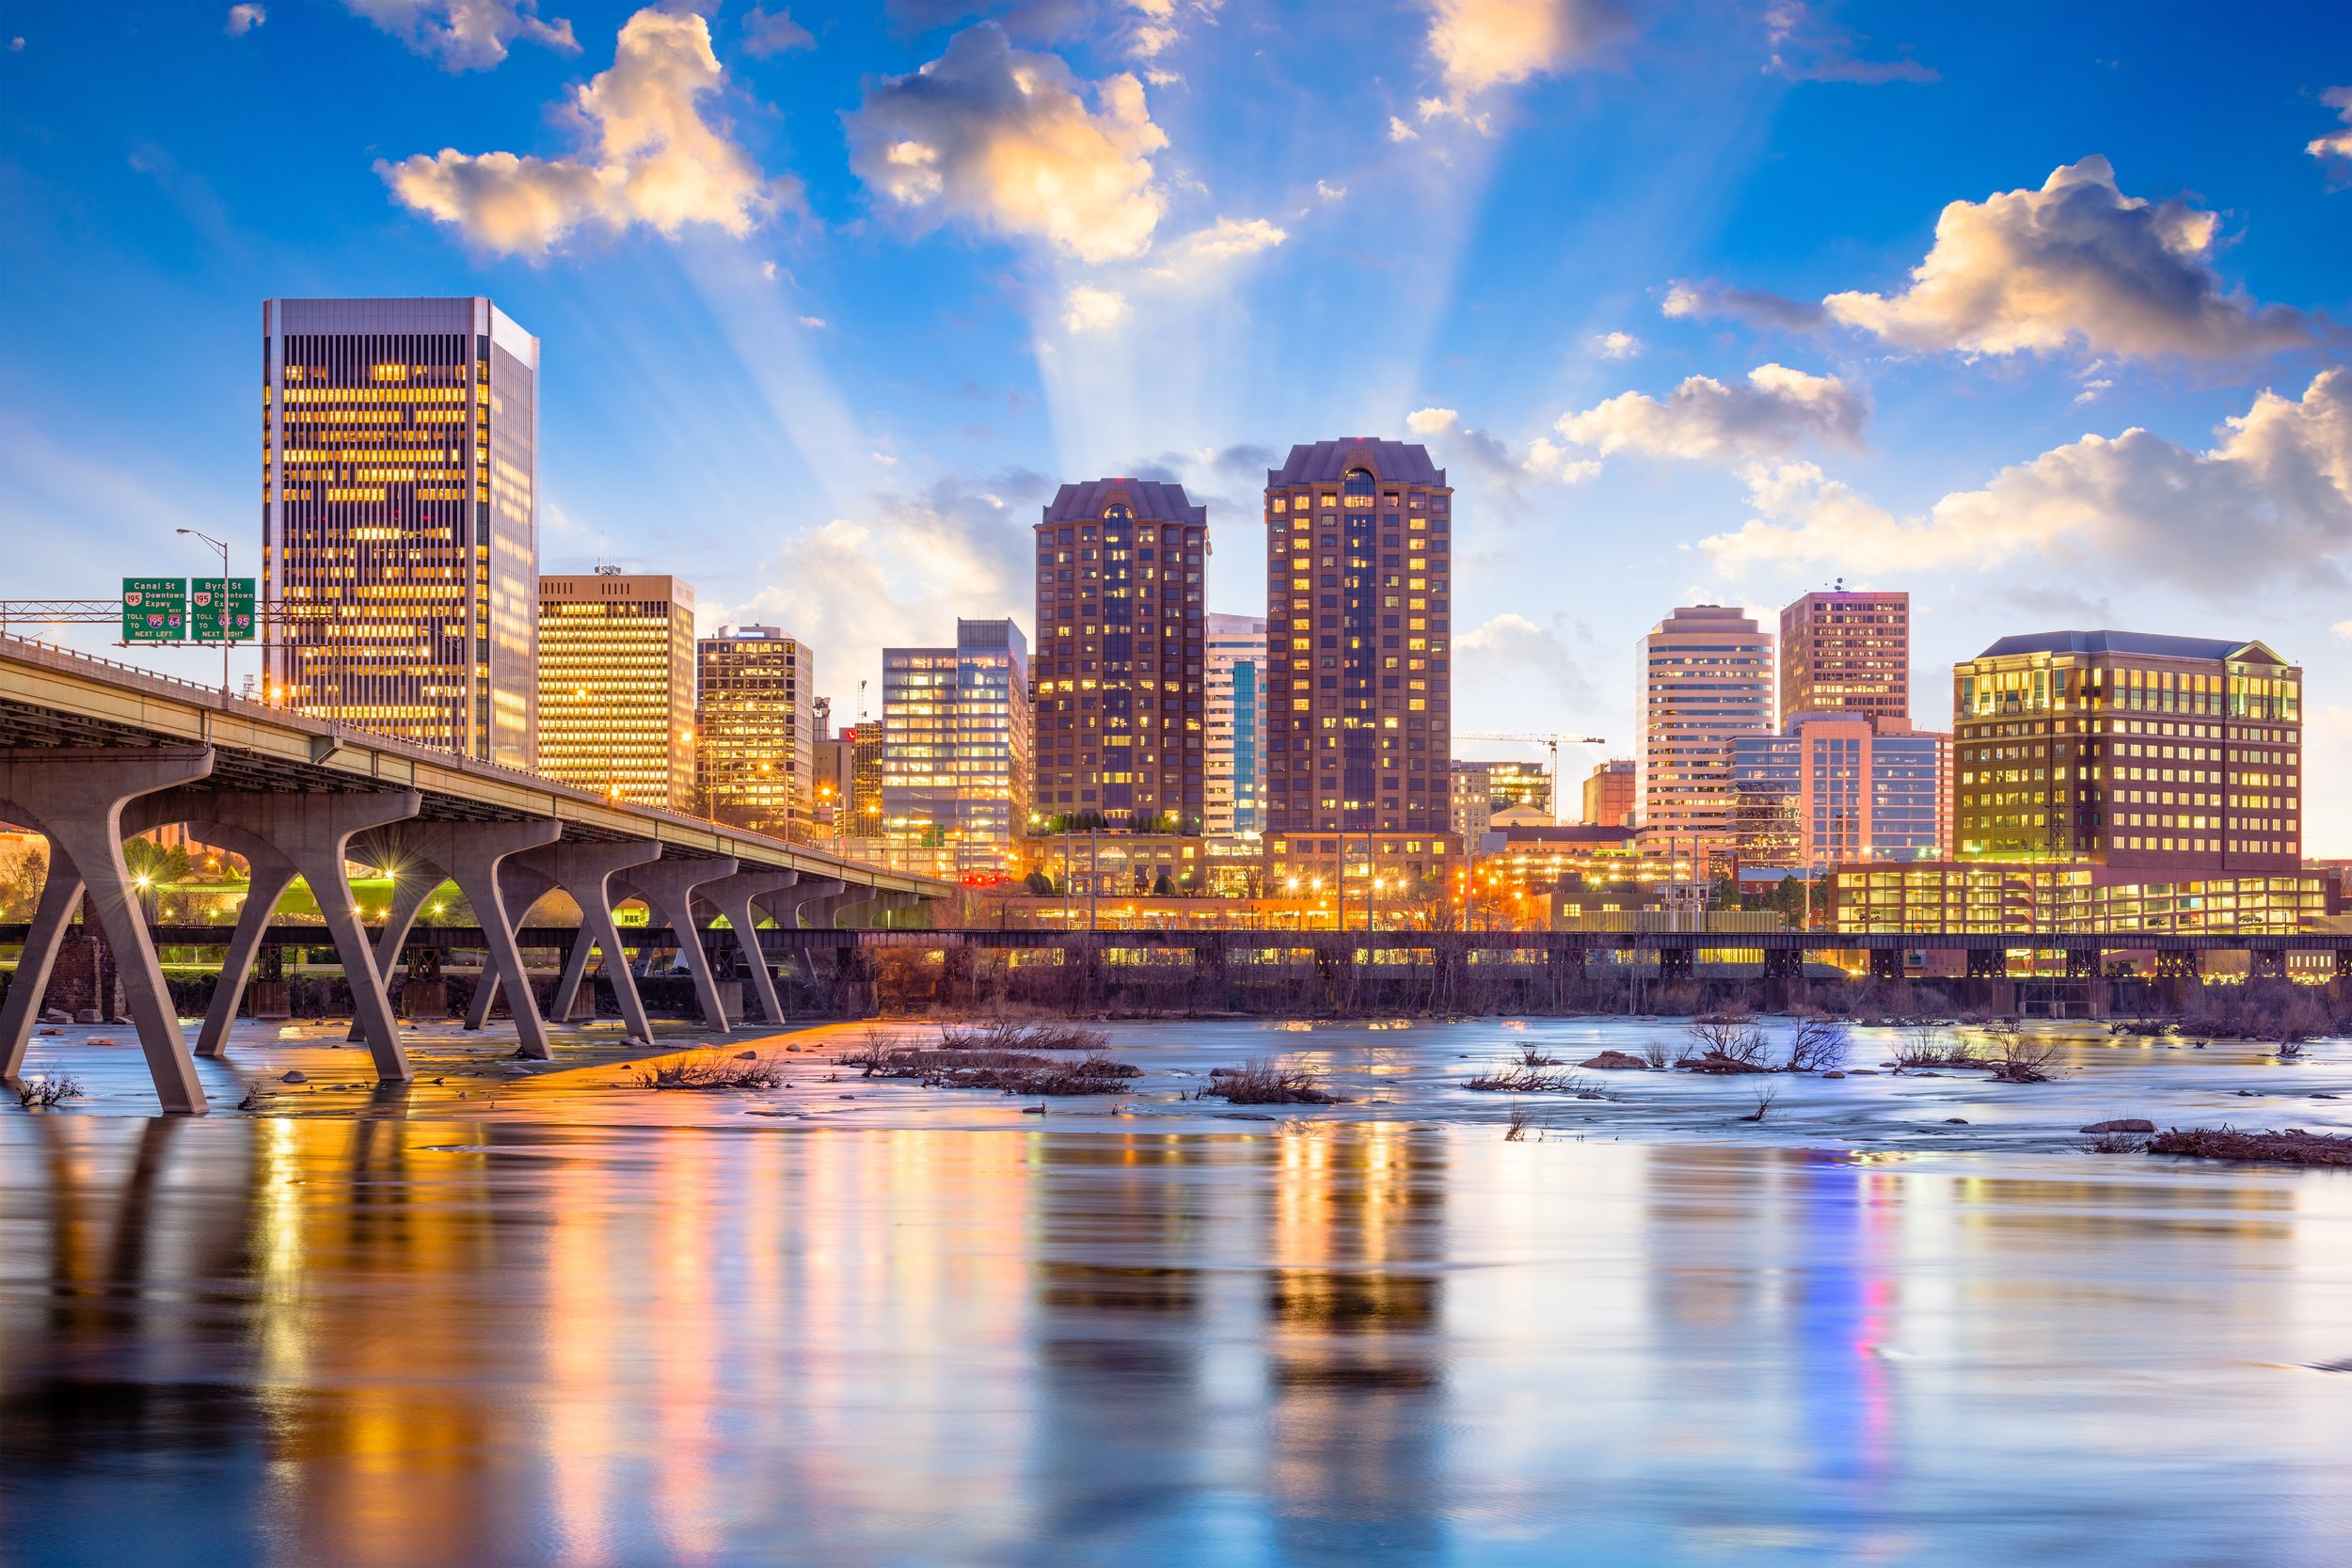 Richmond, VA - Home of the Lewis Ginter Botanical Gardens, Craft Breweries, Cary Town, Renowned Nightlife, and more!